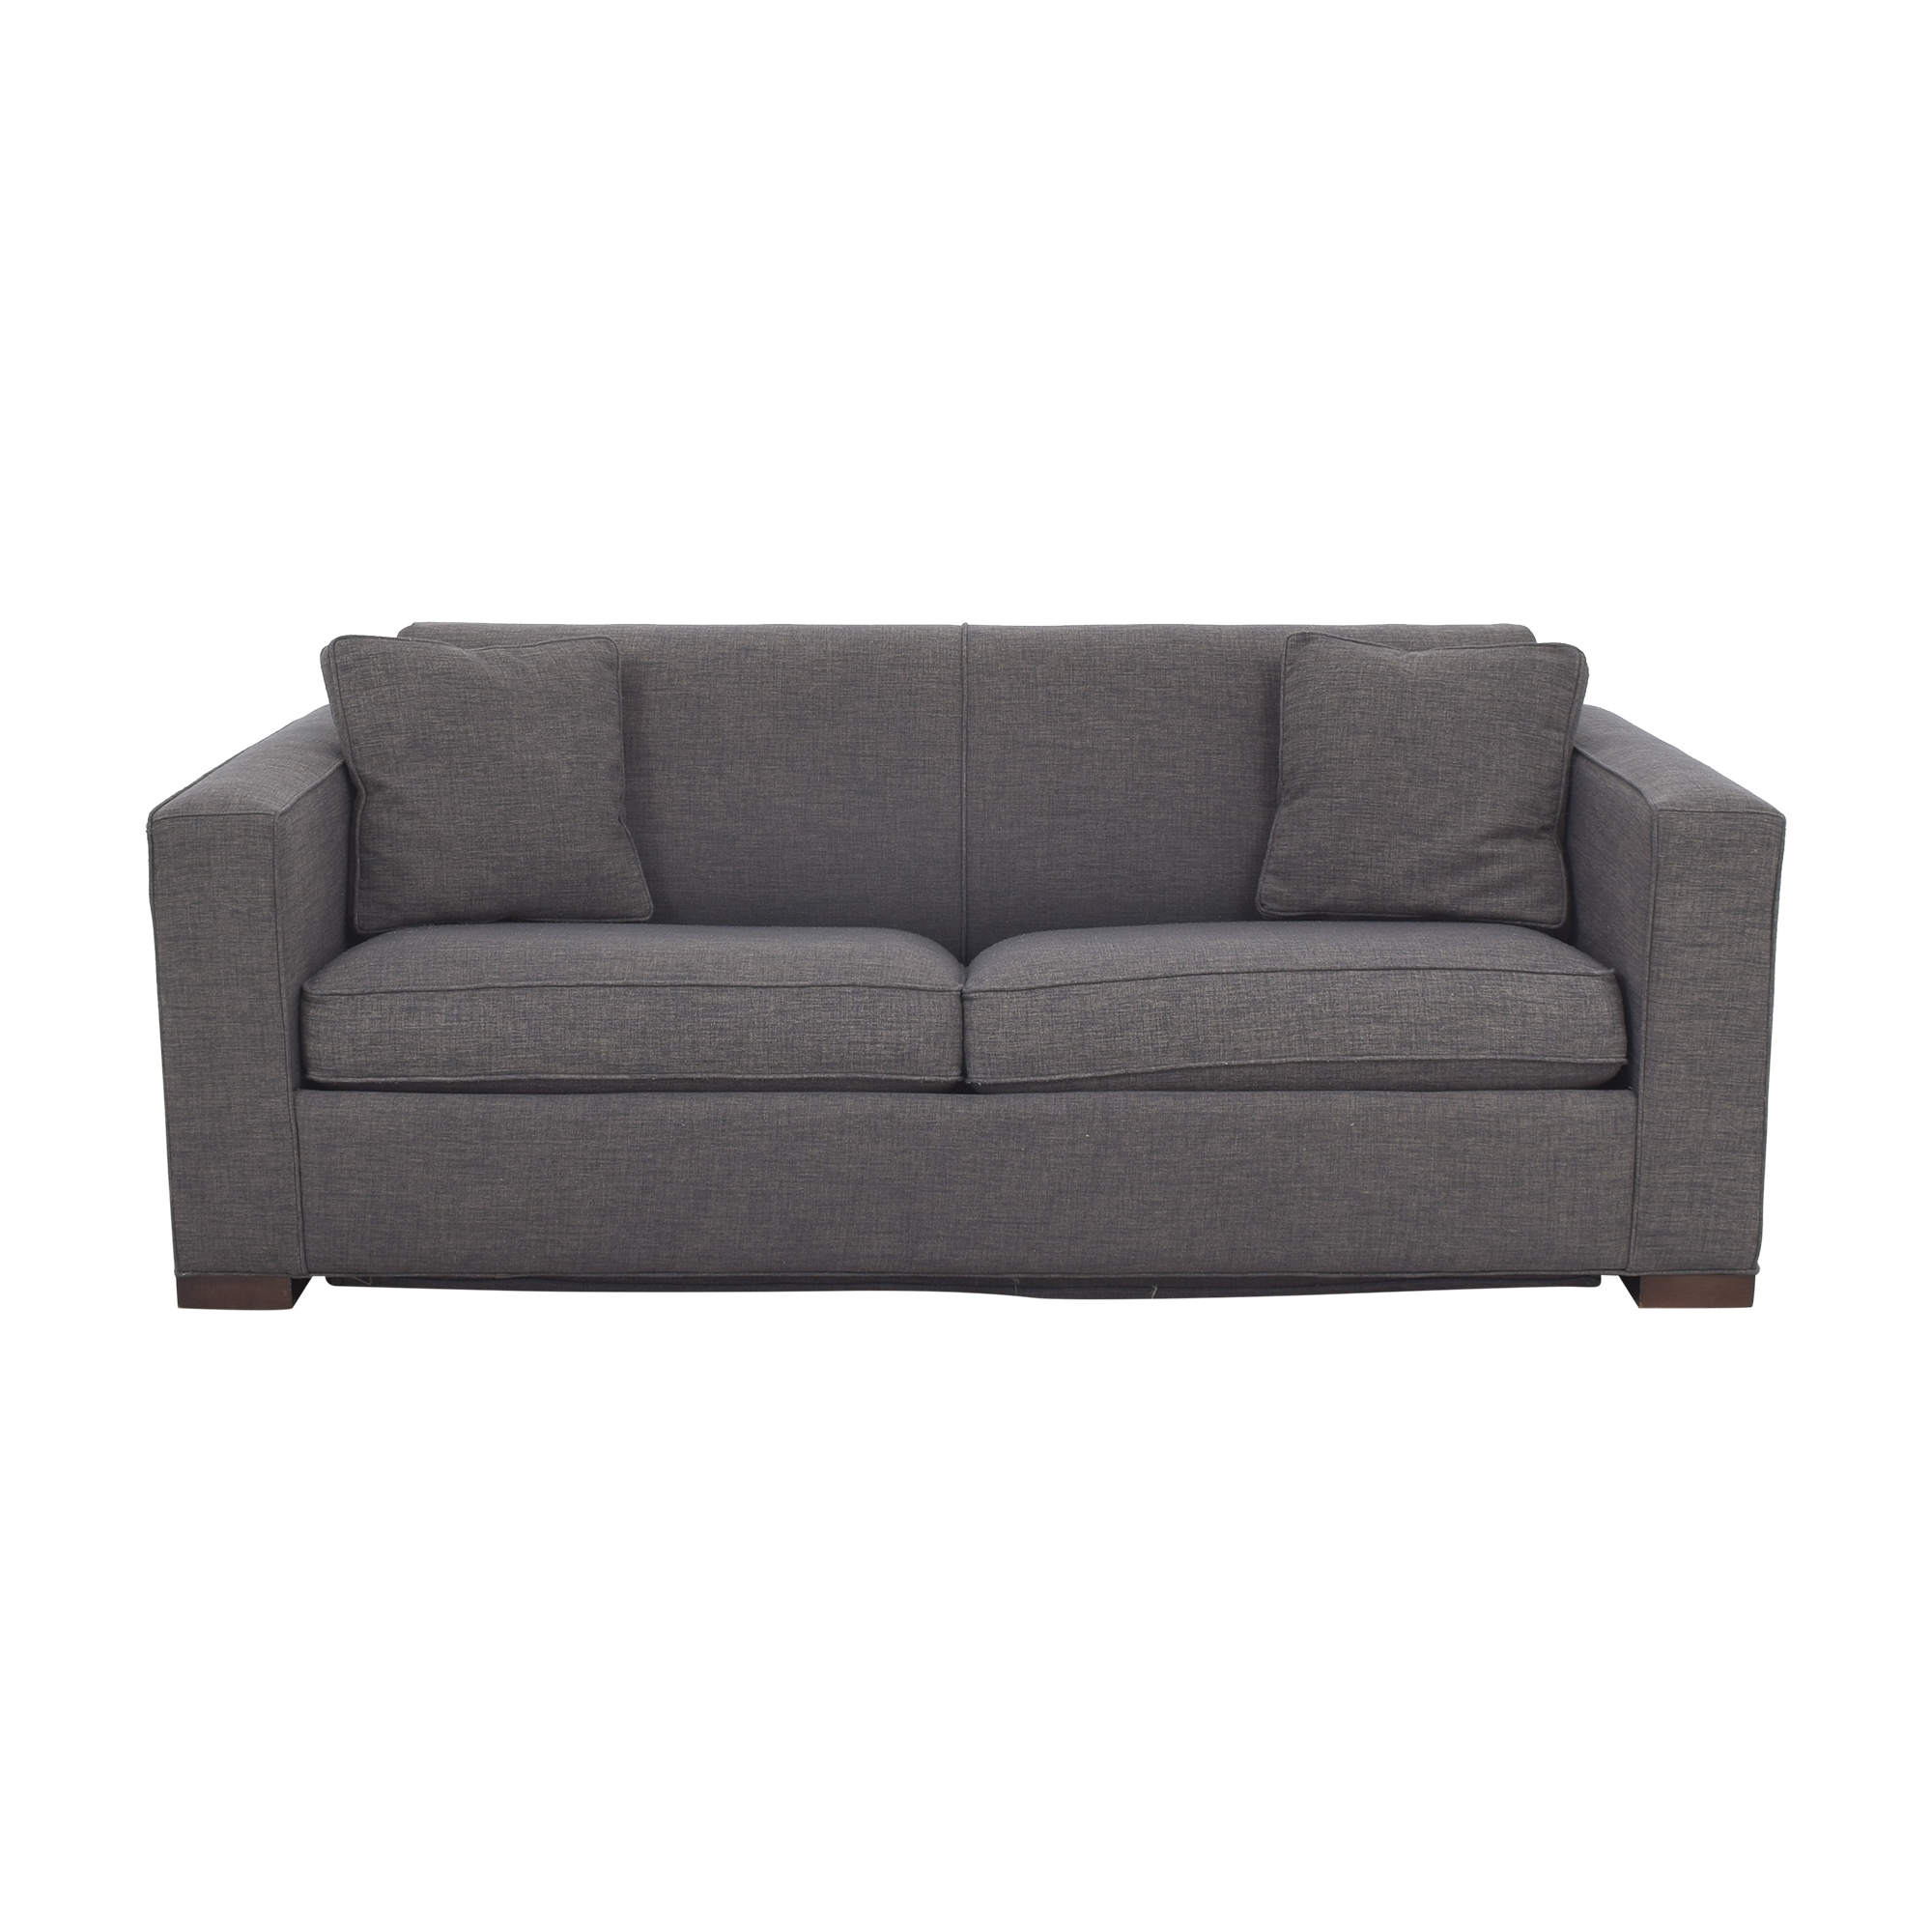 shop ABC Carpet & Home Cobble Hill Sleeper Sofa ABC Carpet & Home